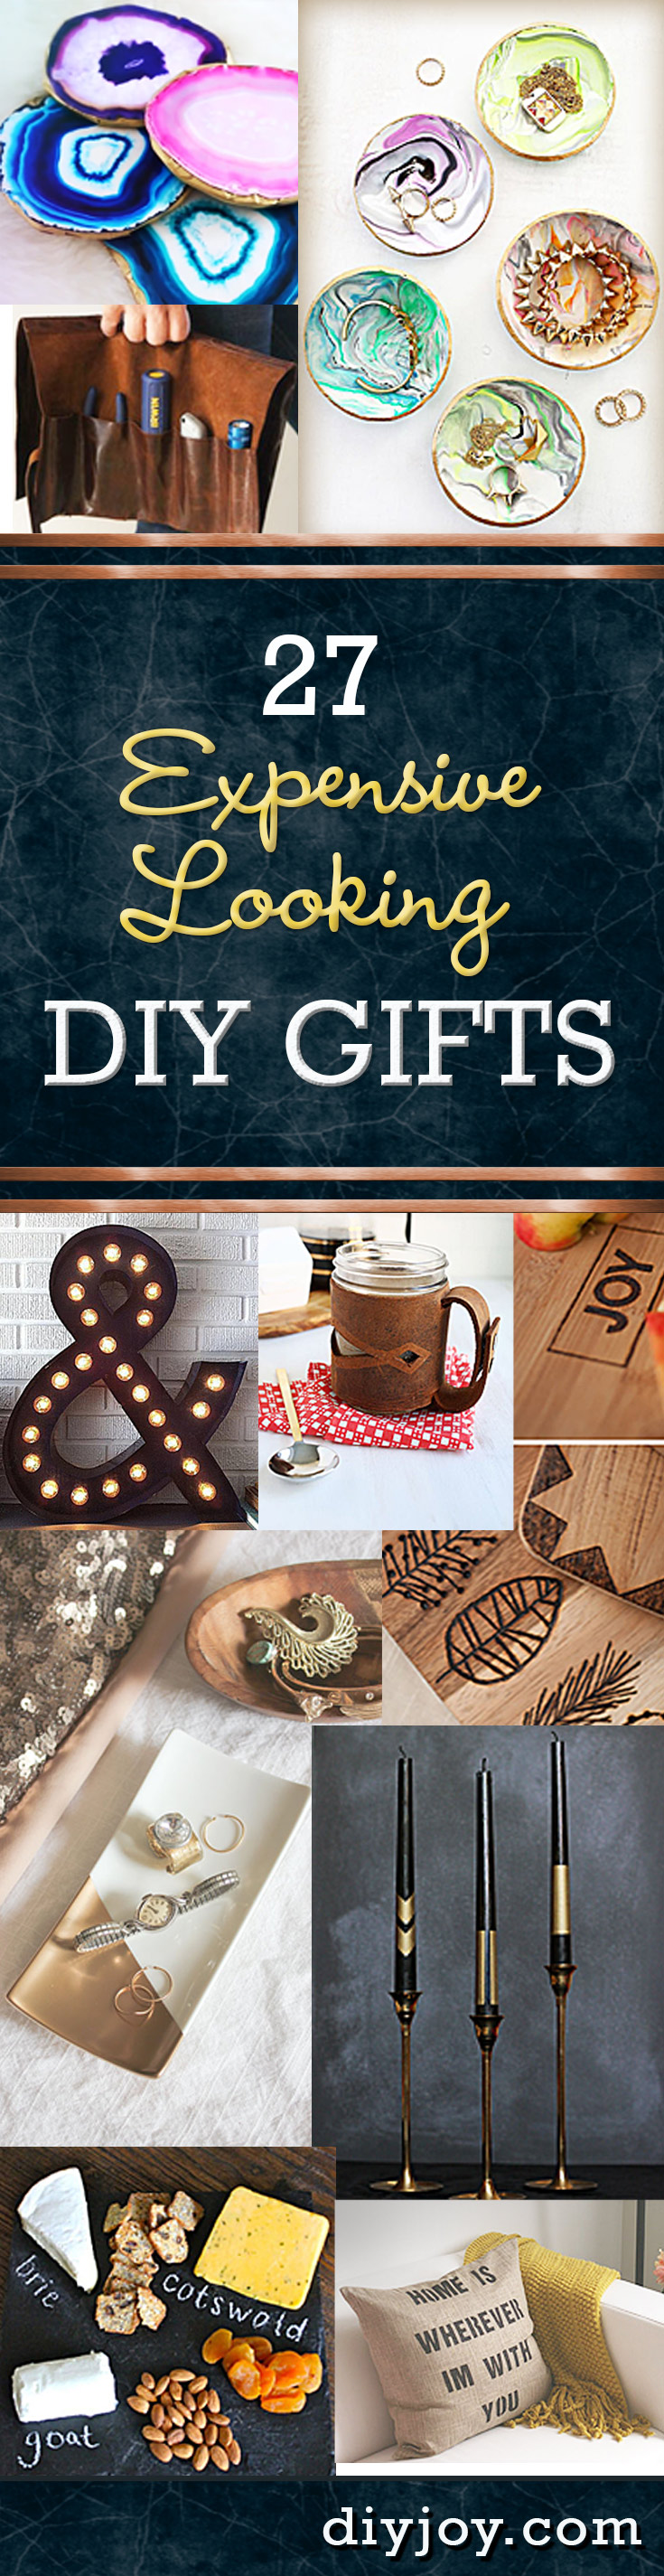 27 expensive looking inexpensive diy gifts inexpensive diy gifts and creative crafts and projects that make cool diy gift ideas cheap solutioingenieria Image collections